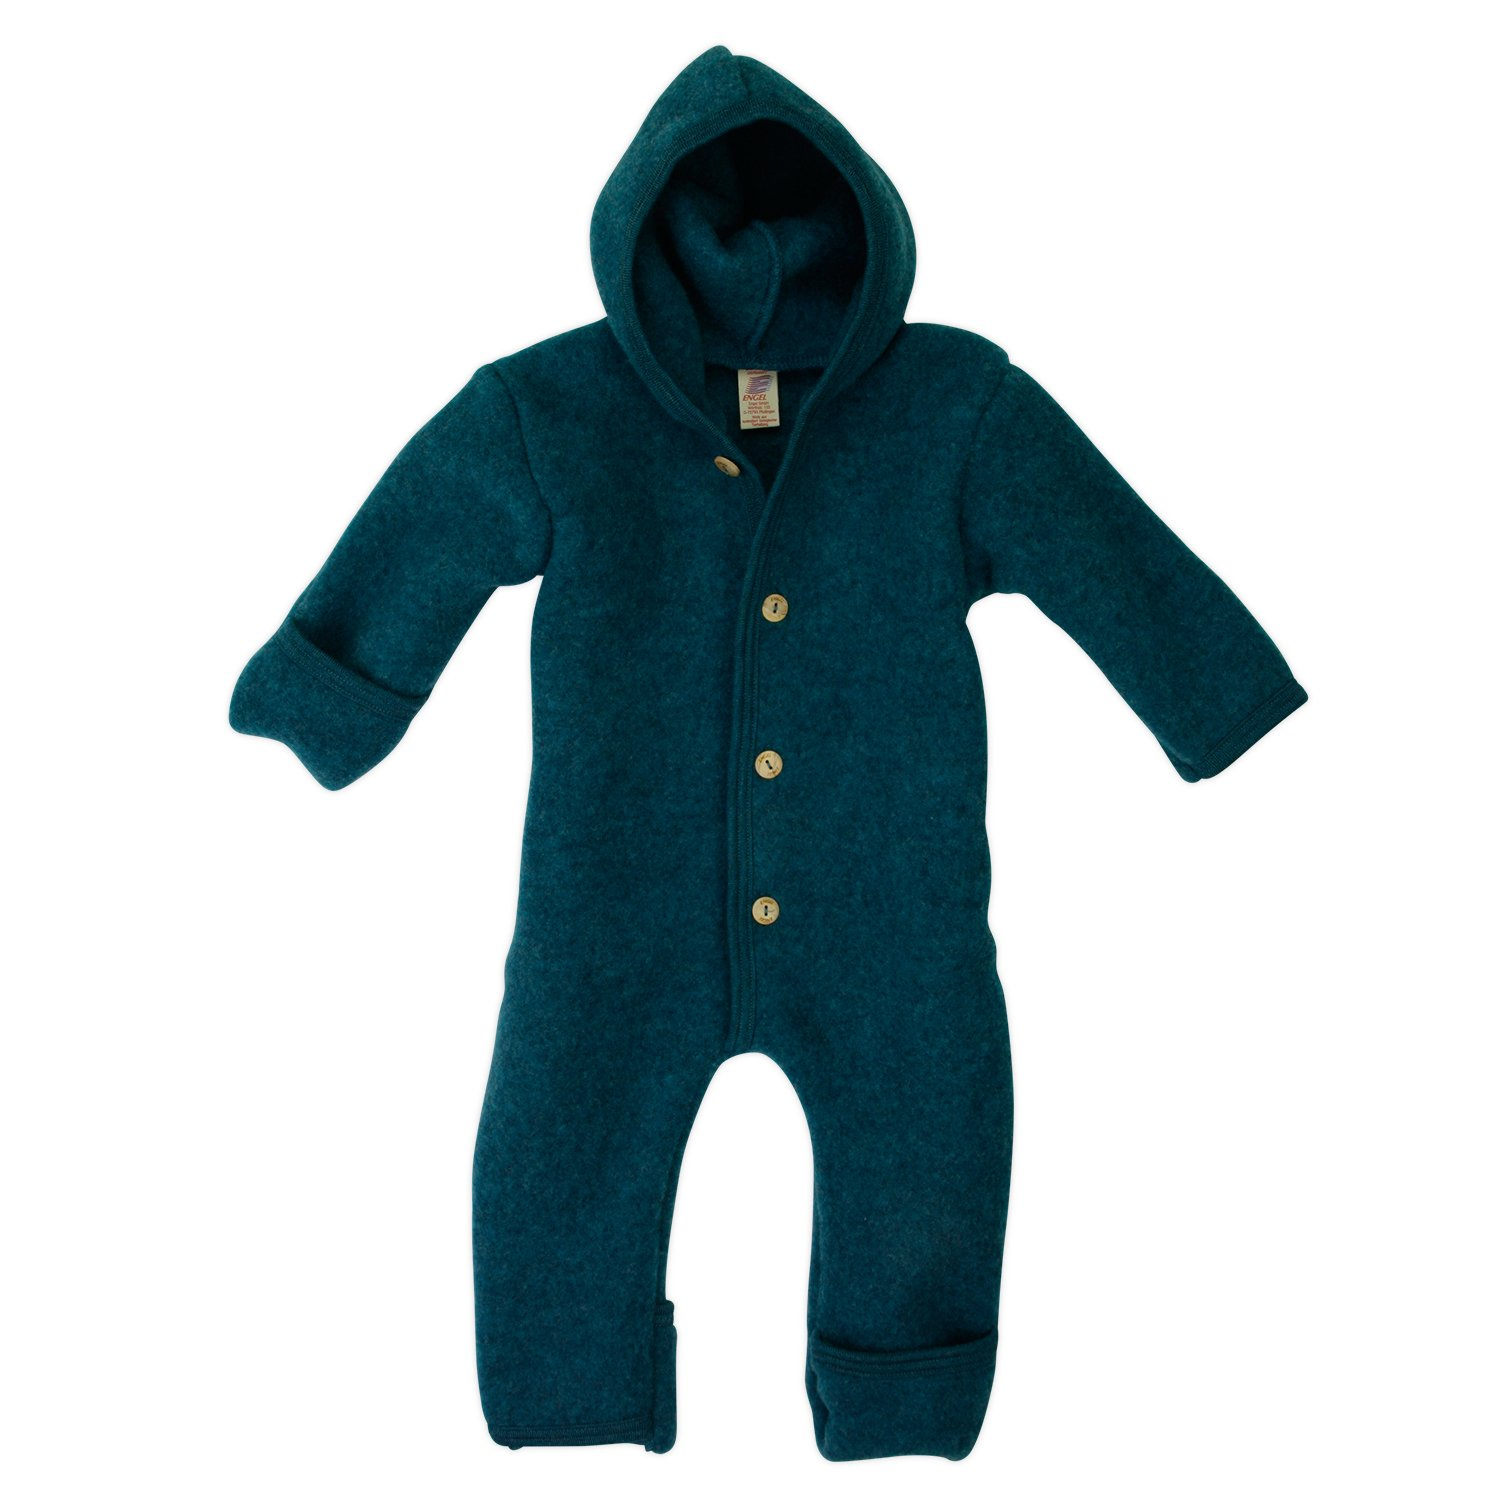 Engel - Baby Hooded Overall With Wooden Buttons, 100% Organic Merino Wool kb575722